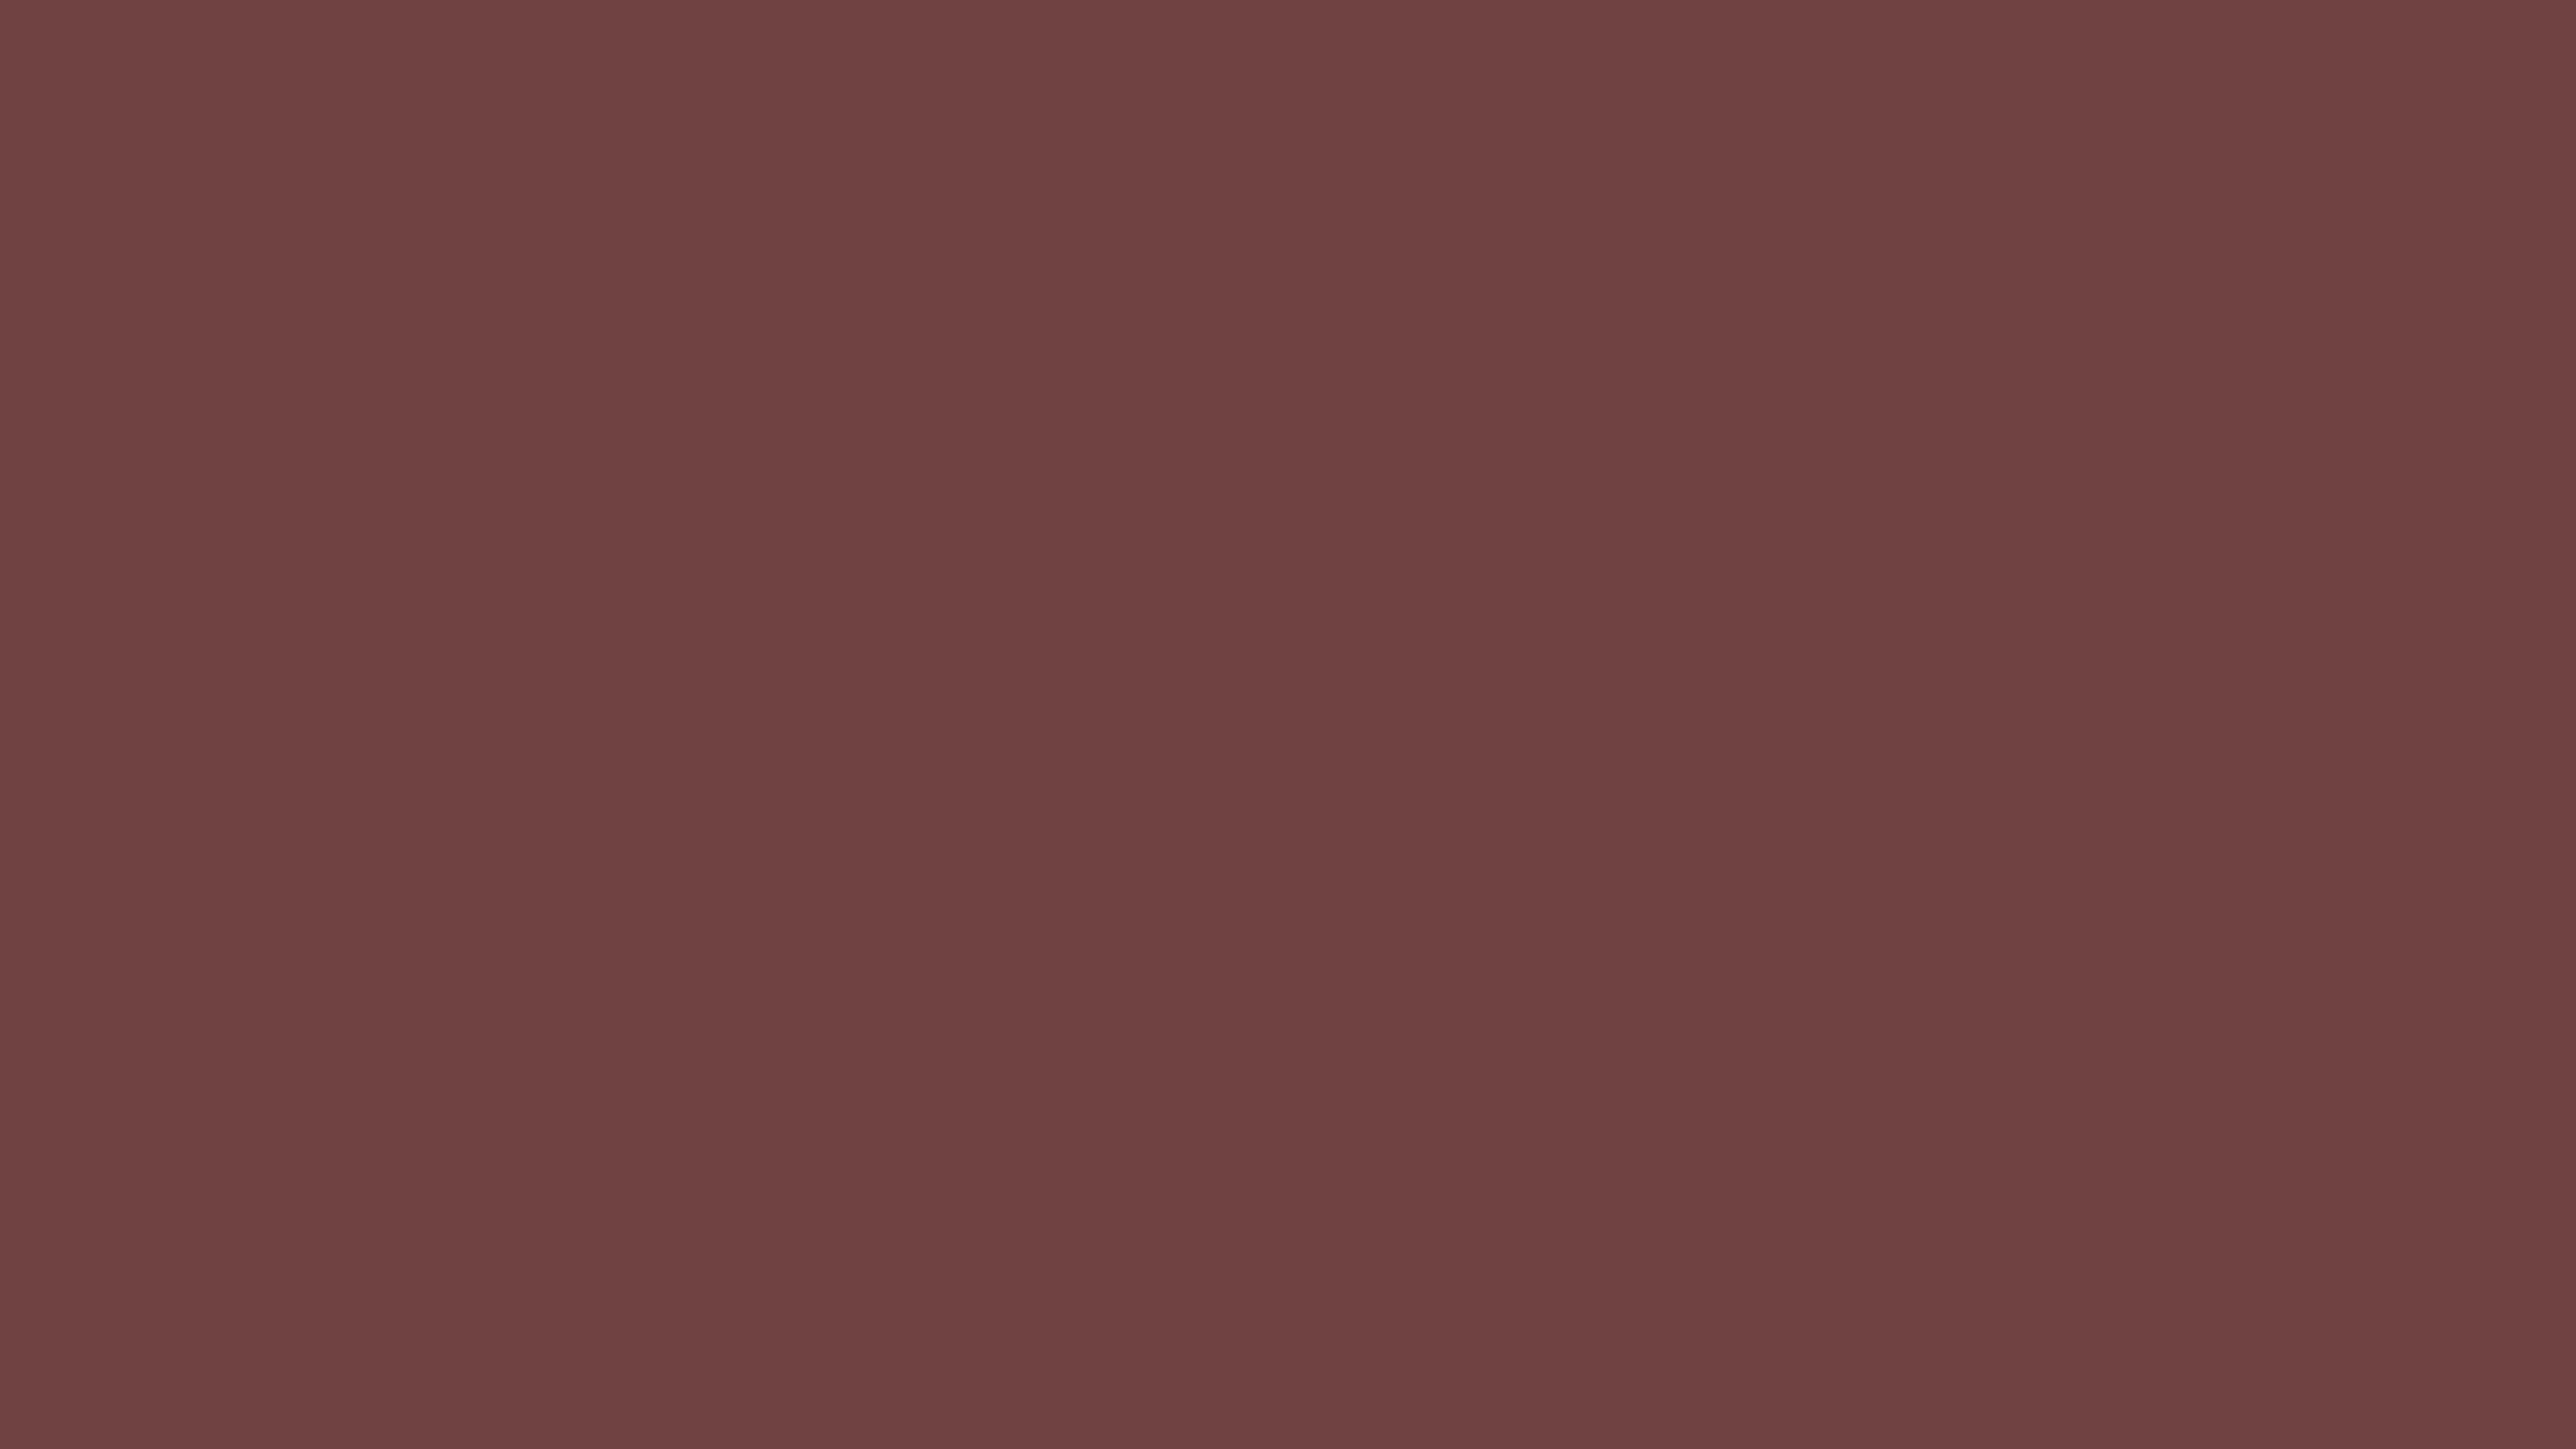 4096x2304 Deep Coffee Solid Color Background